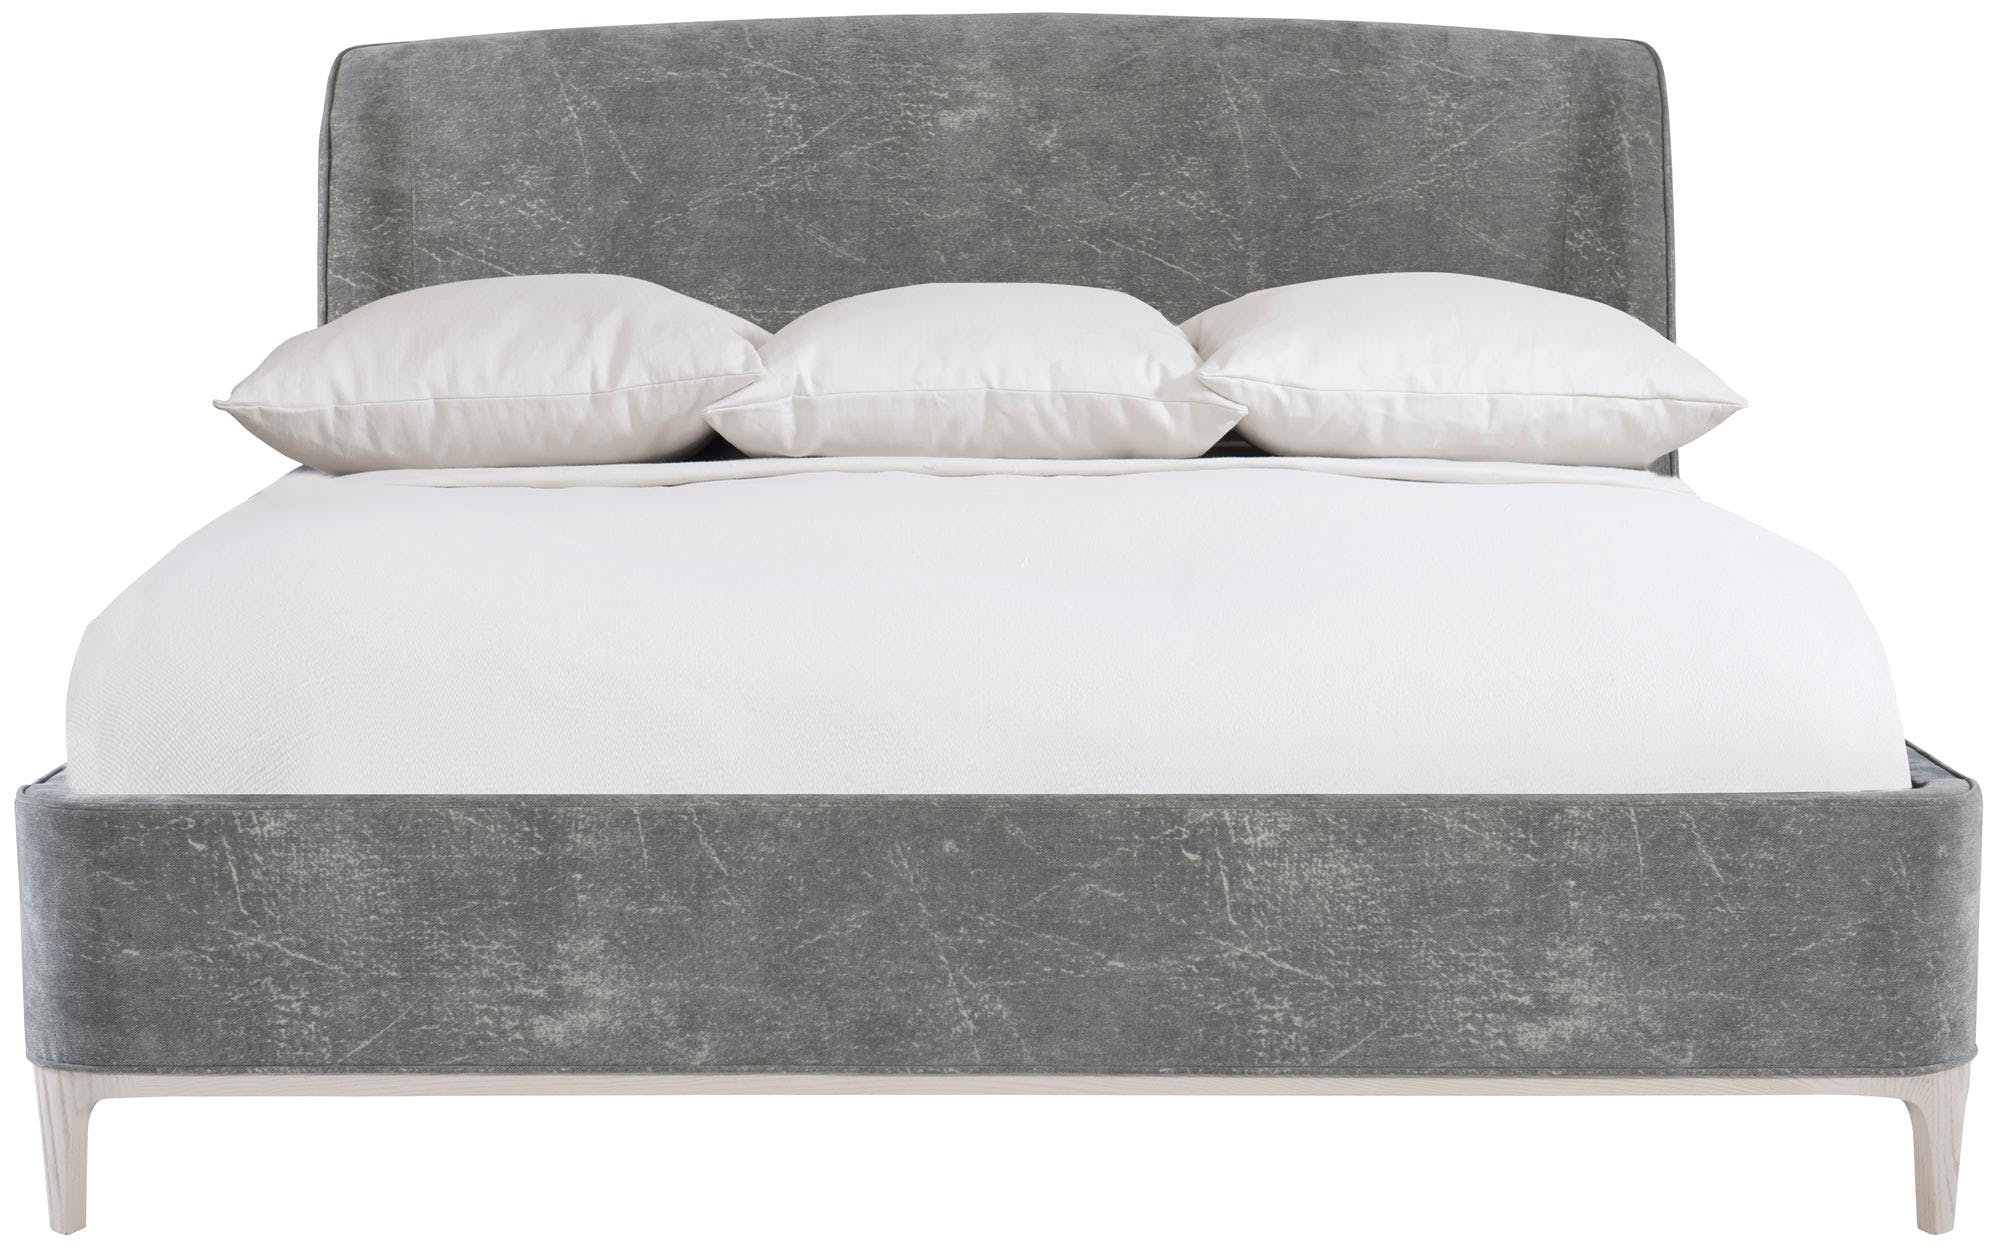 Image of: Upholstered Bed By Bernhardt Interiors 396 H76 396 Fr76